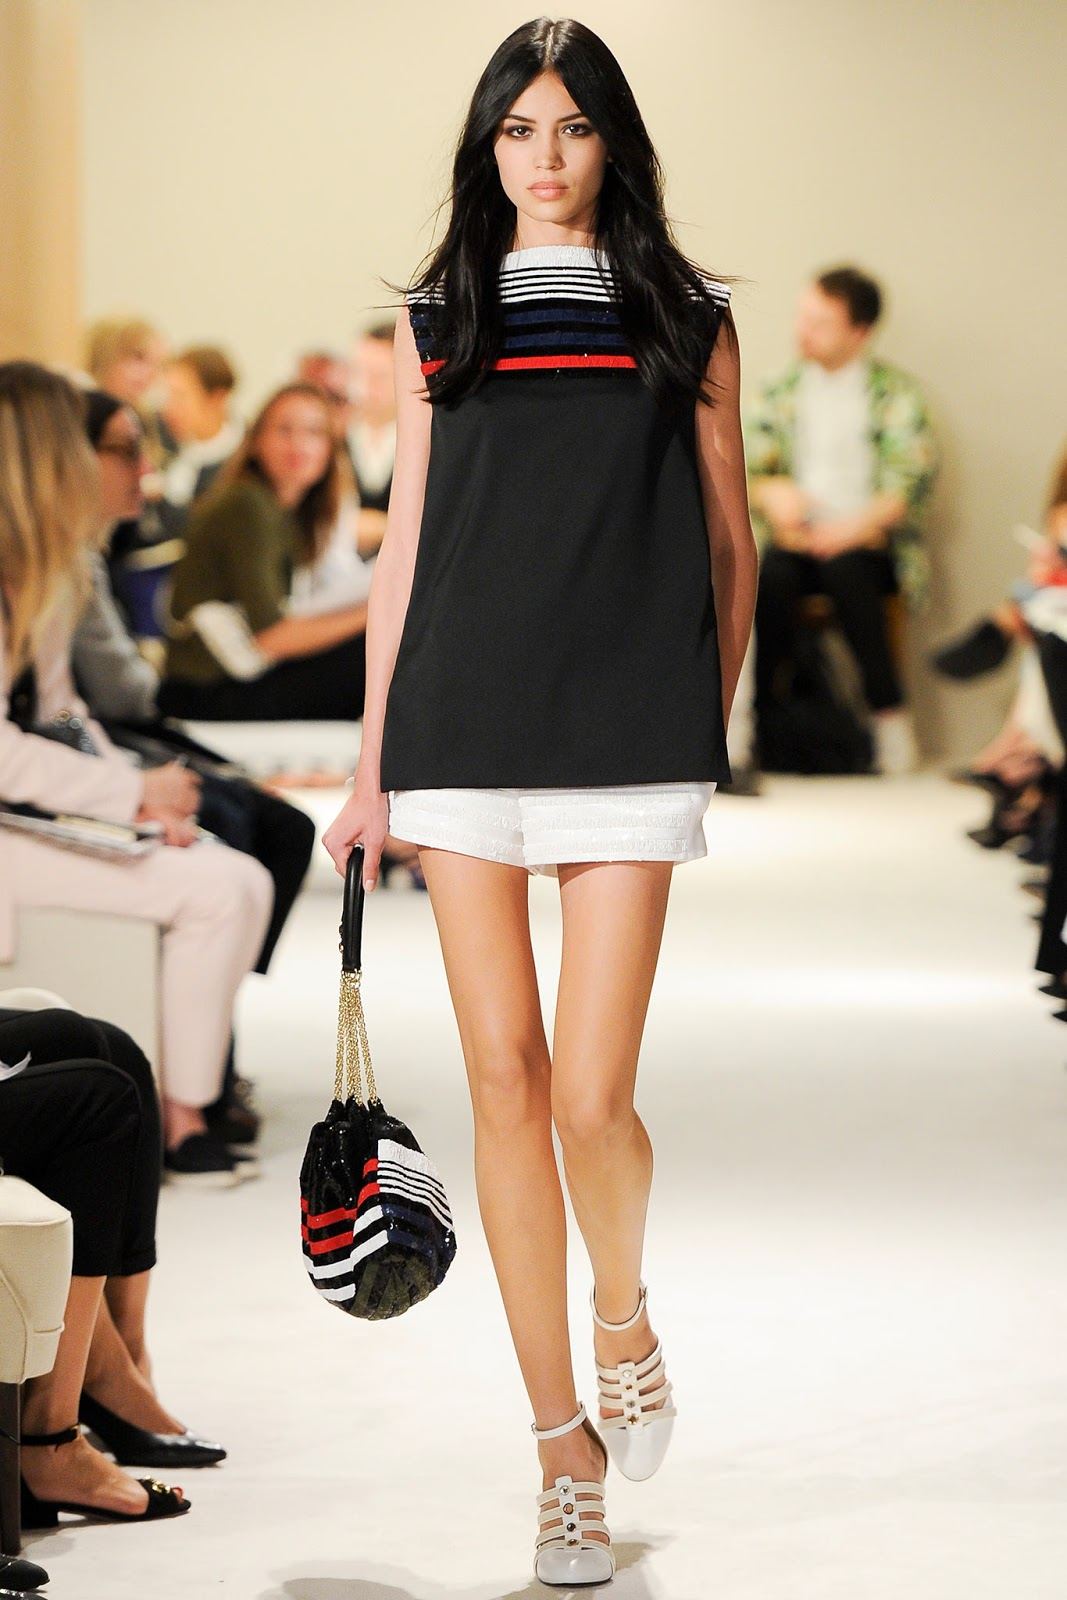 Julie de Libran for Sonia Rykiel Spring/Summer 2015 | Paris fashion week | September 2014